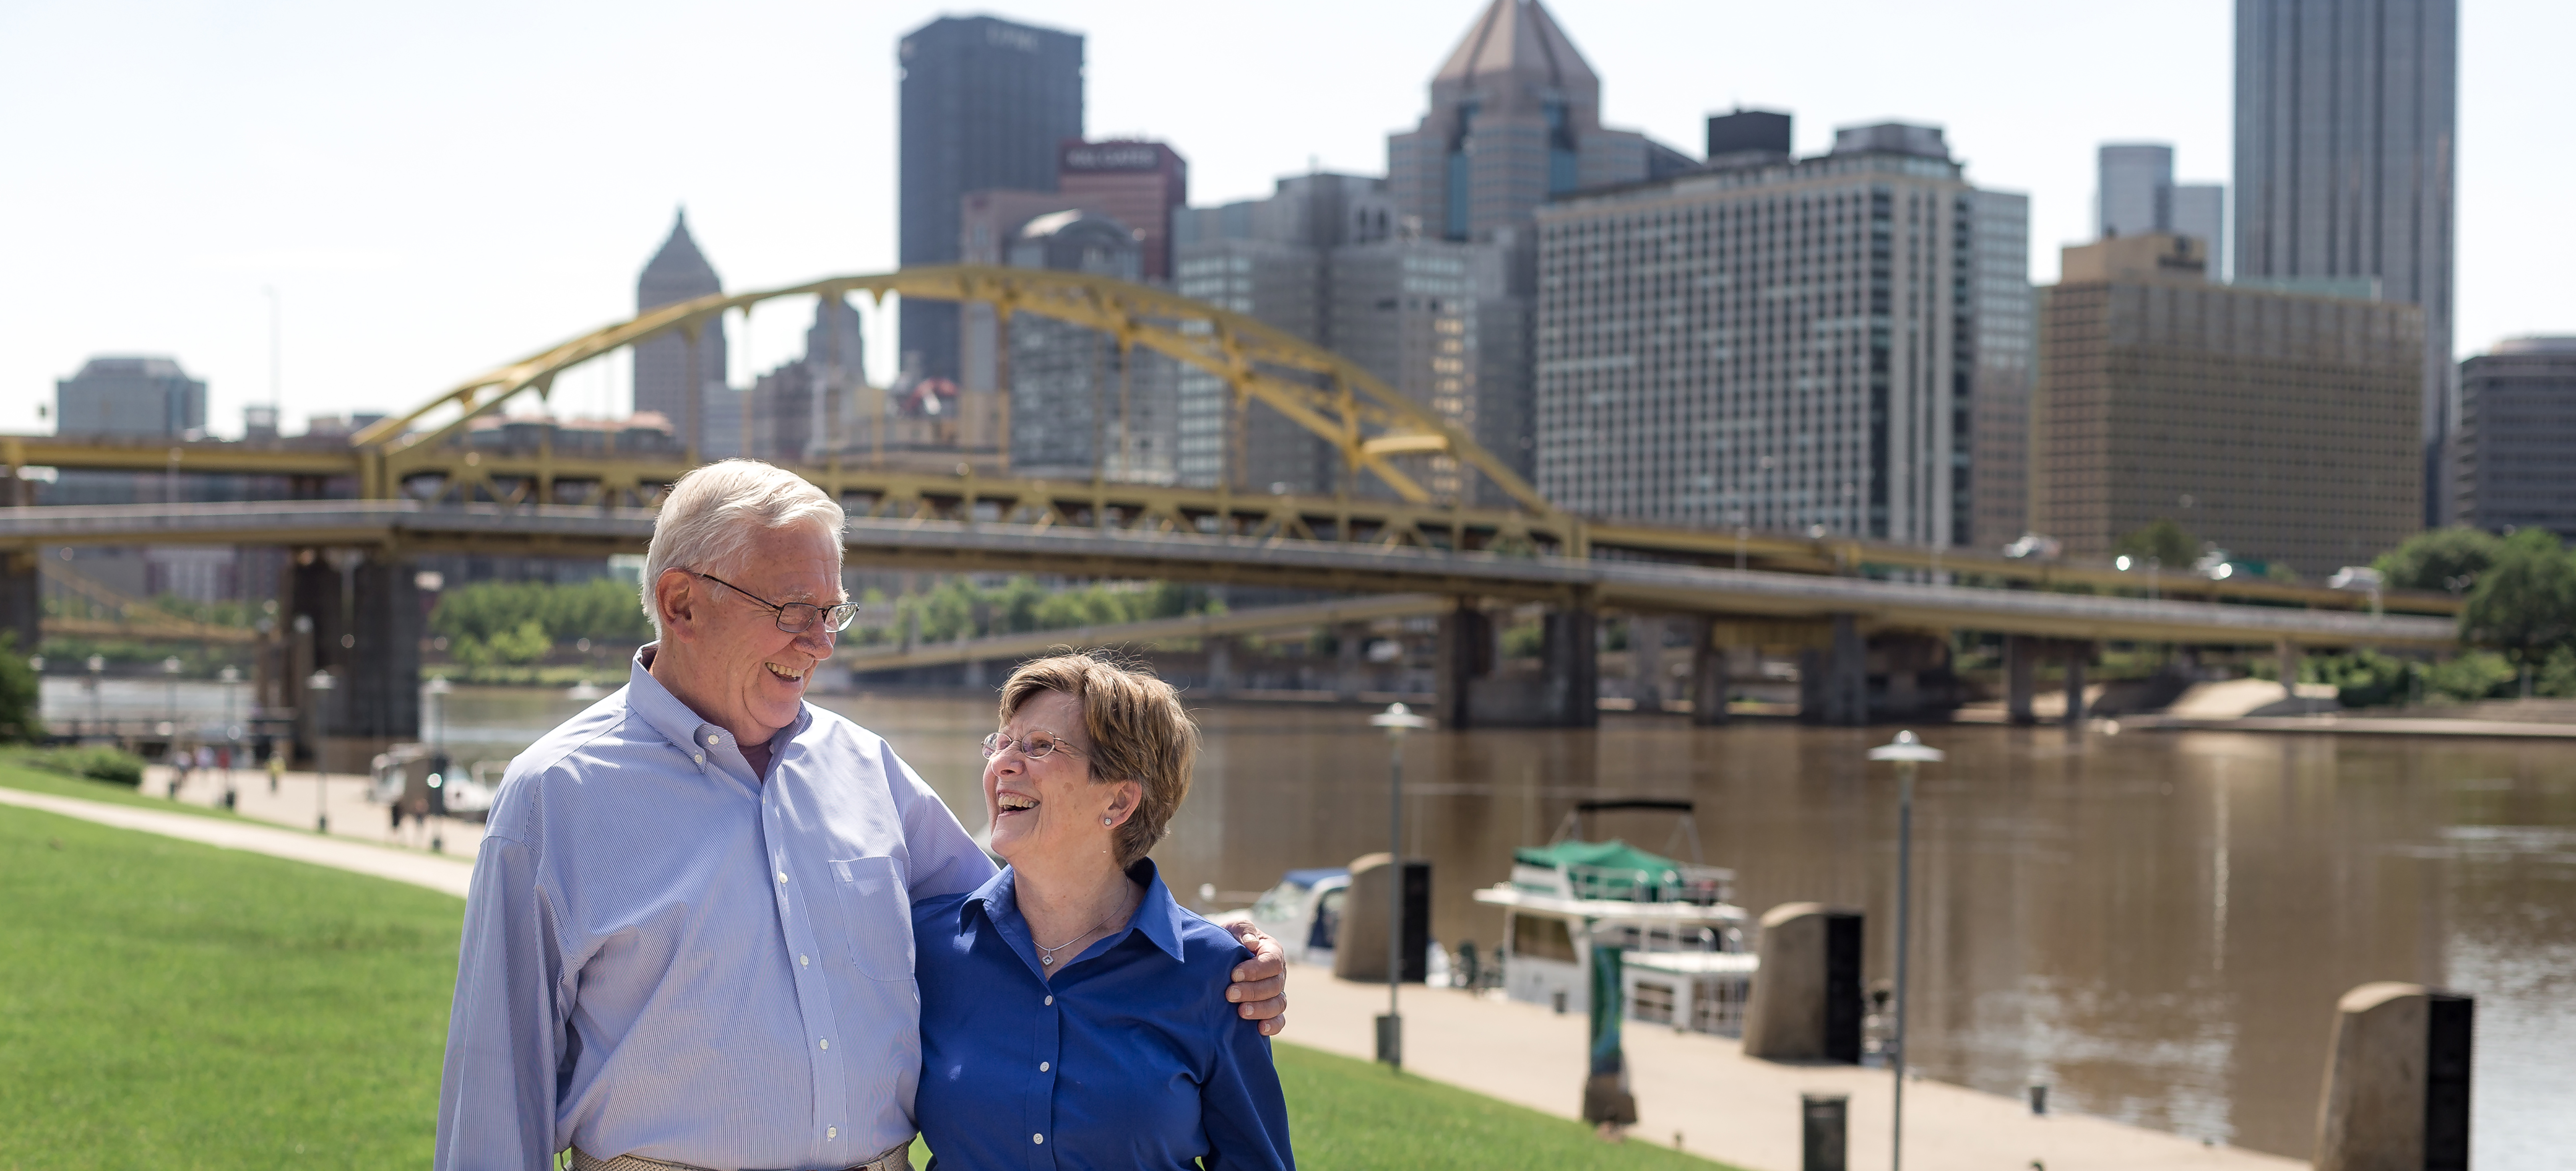 Couple stands outside and looks lovingly at each other in front large driving bridge. There is a river and a city in the background.